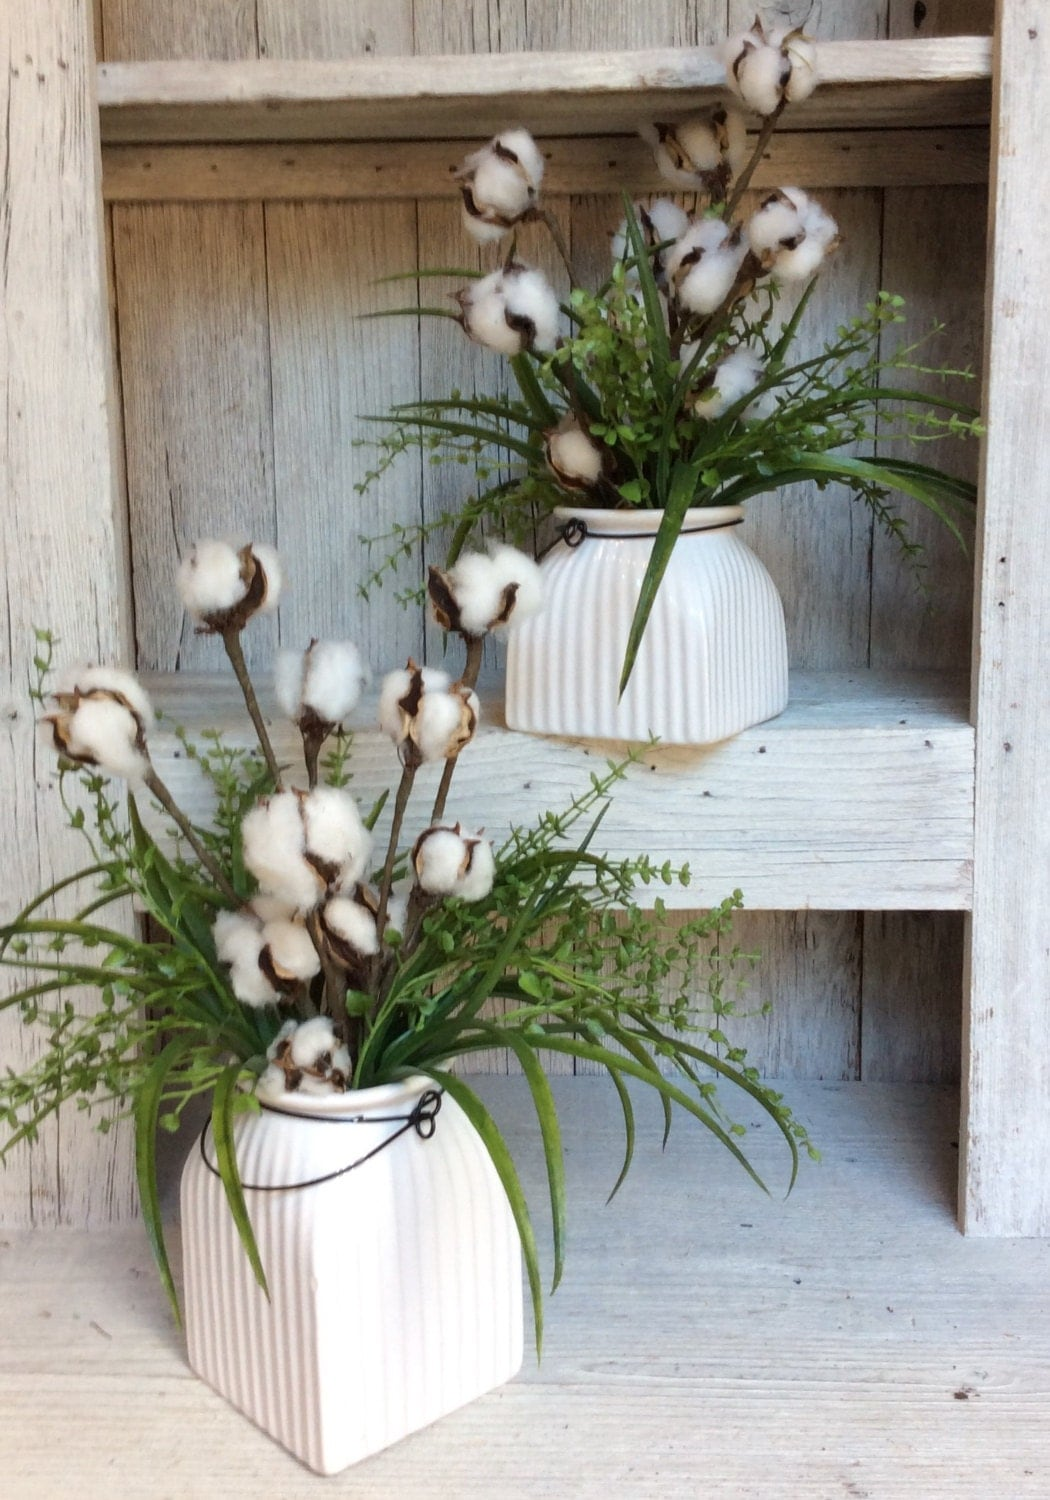 Cotton Floral Arrangment,Fixer upper style, Small Floral arrangement ,Cotton Arrangemnet,Magnolia market decor,Farmhouse decor, Rustic decor